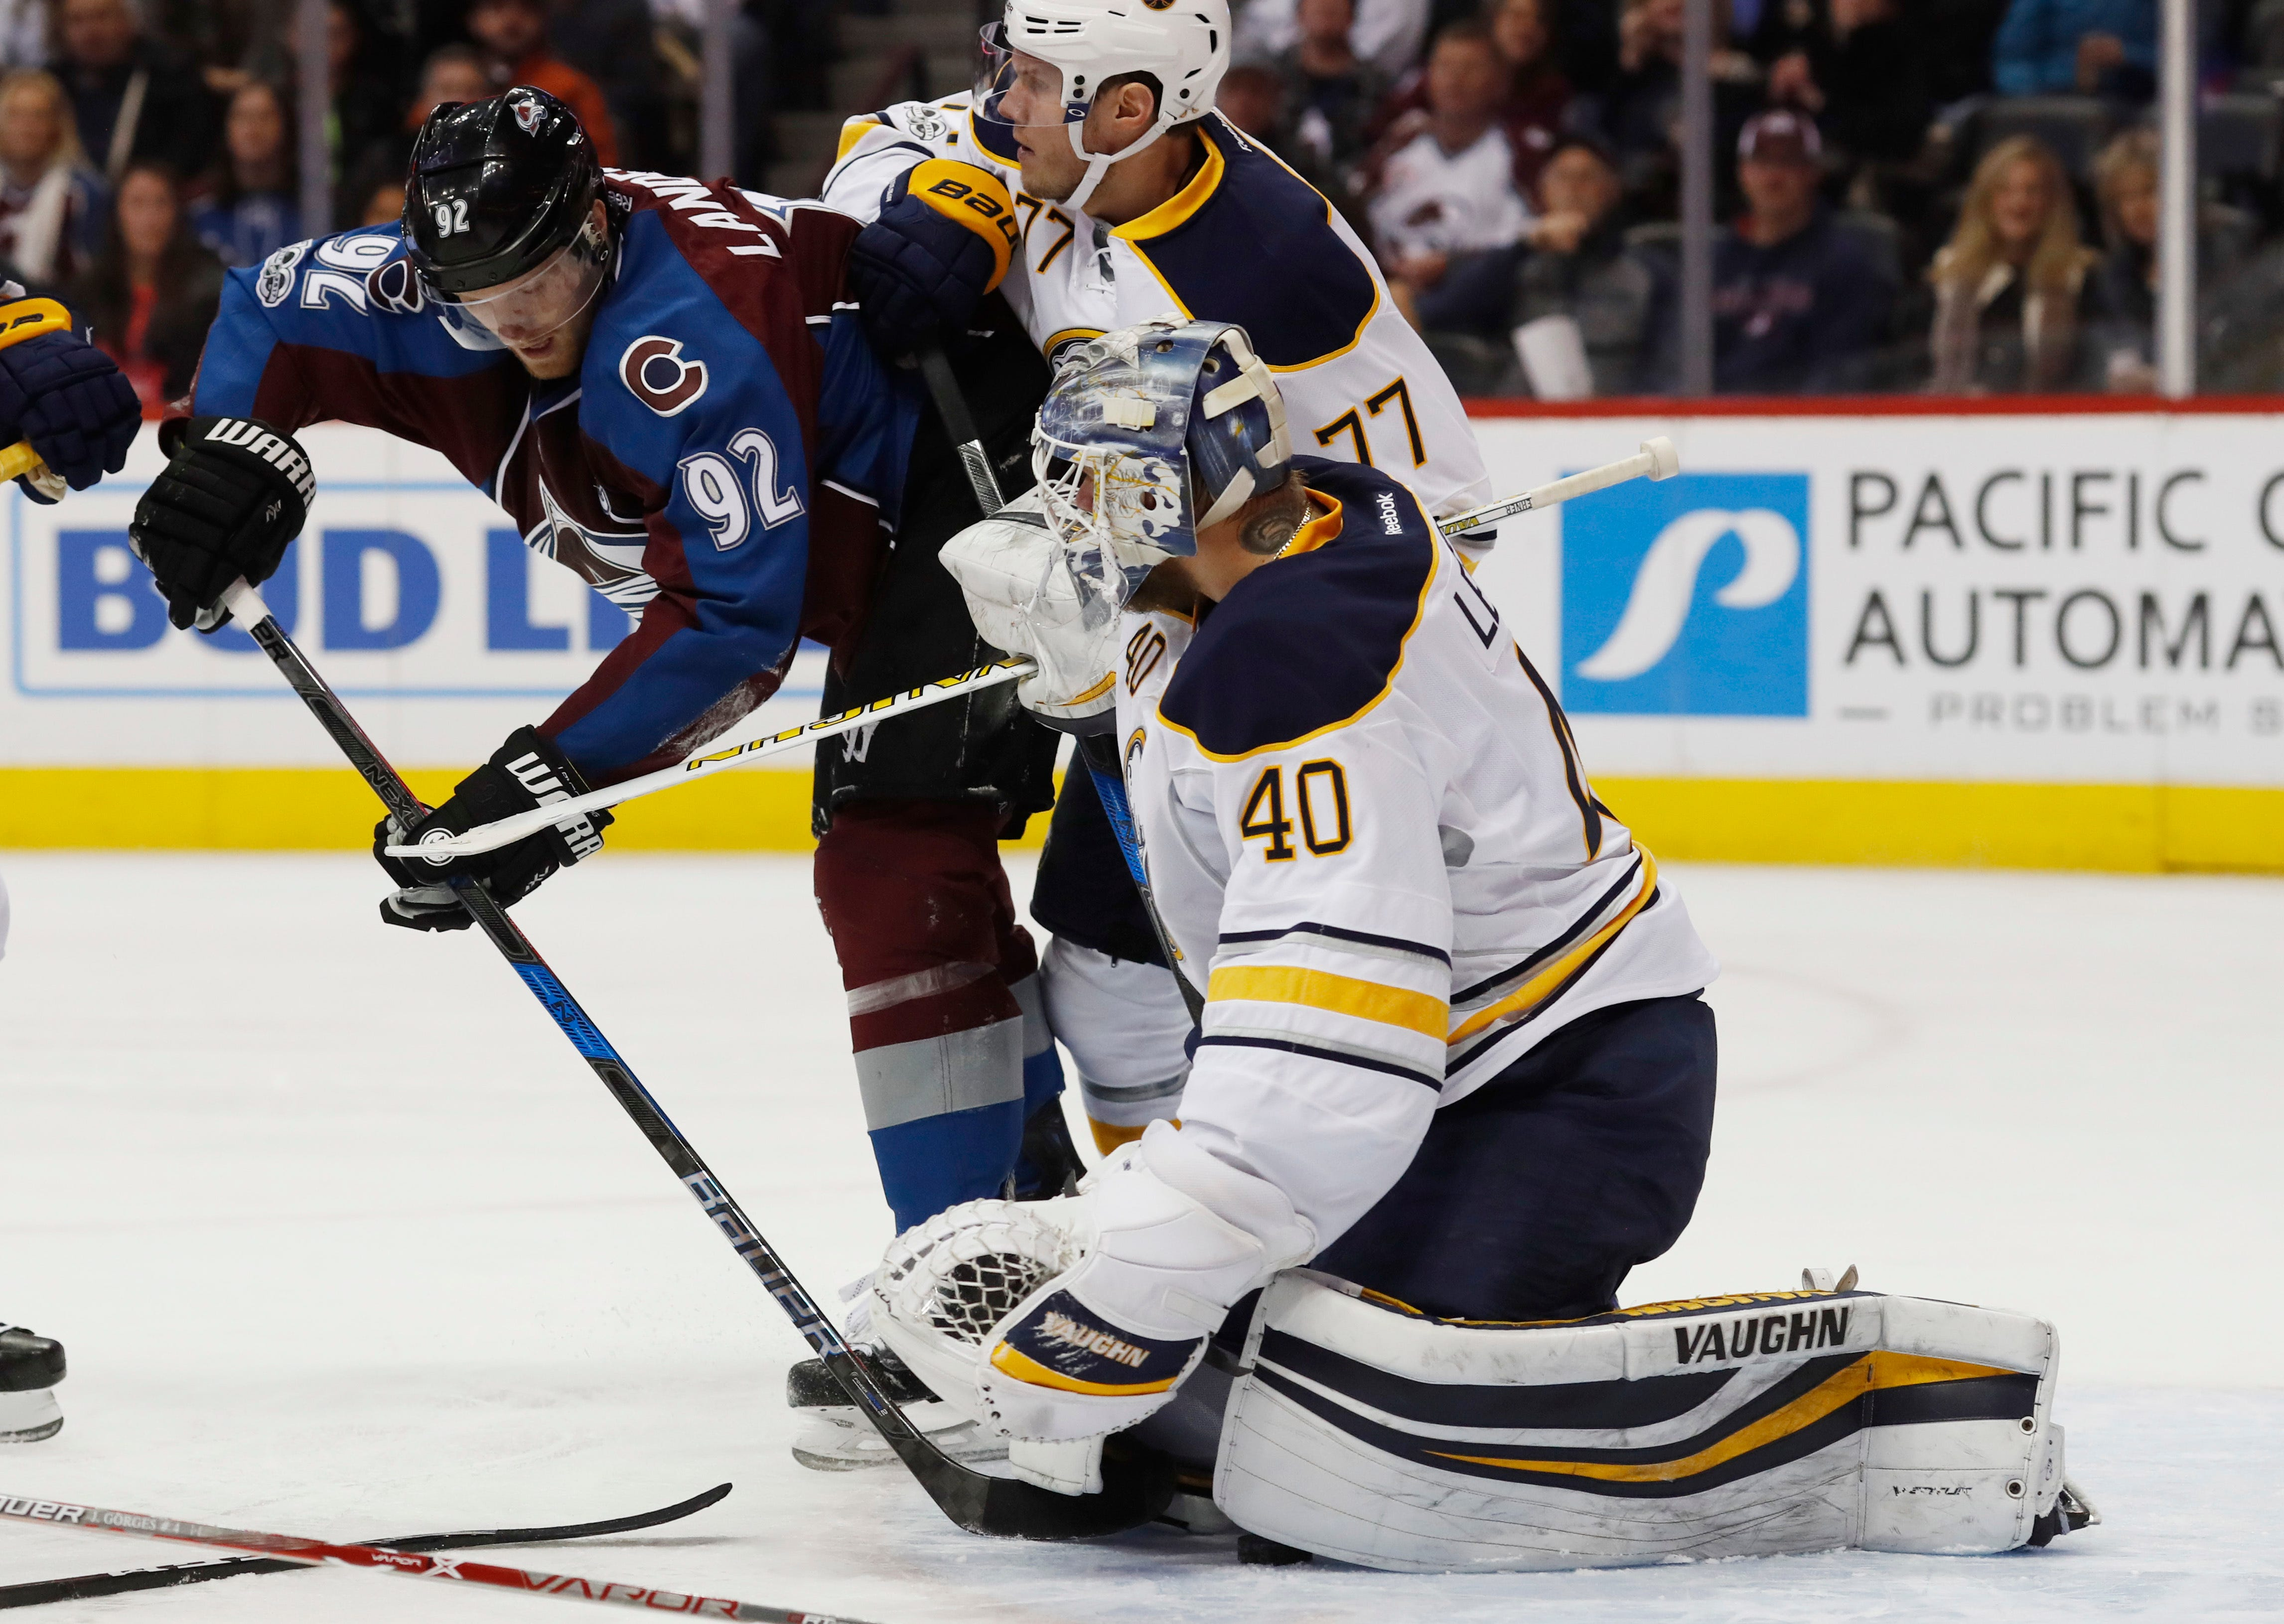 Jeremy Smith gets first NHL win as Avalanche beat Sabres 5-3